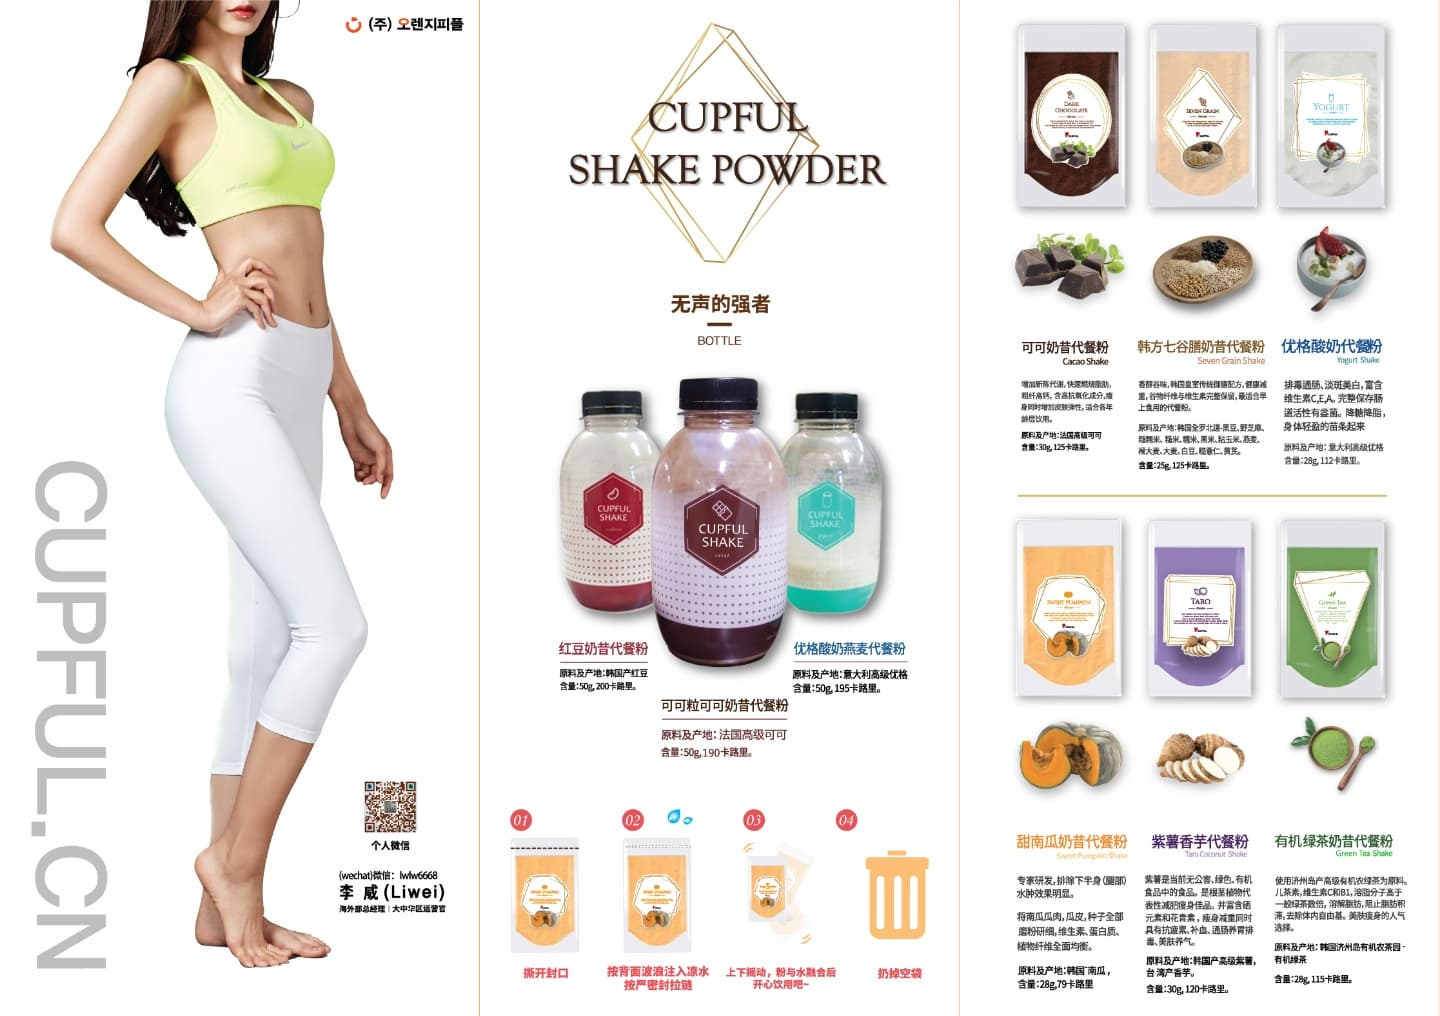 CUPFUL SHAKE _Pouch_ Bottle_